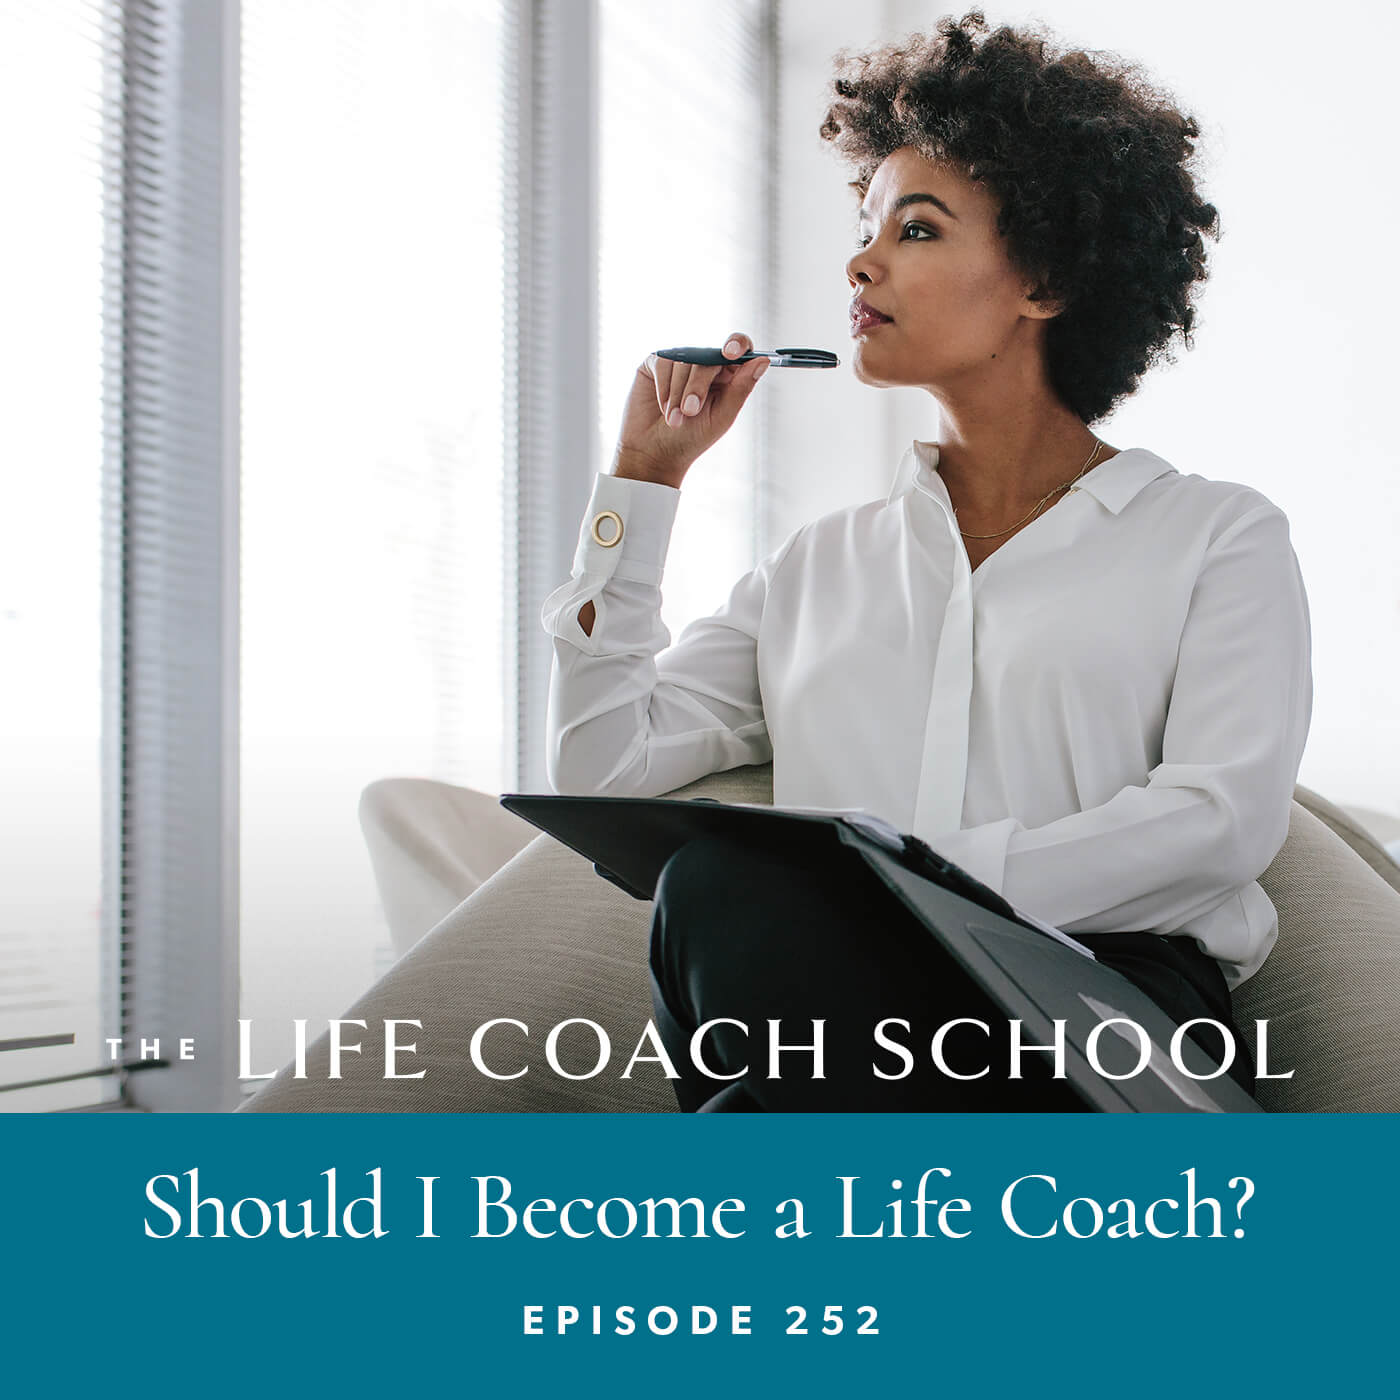 The Life Coach School Podcast with Brooke Castillo | Episode 252 | Should I Become a Life Coach?